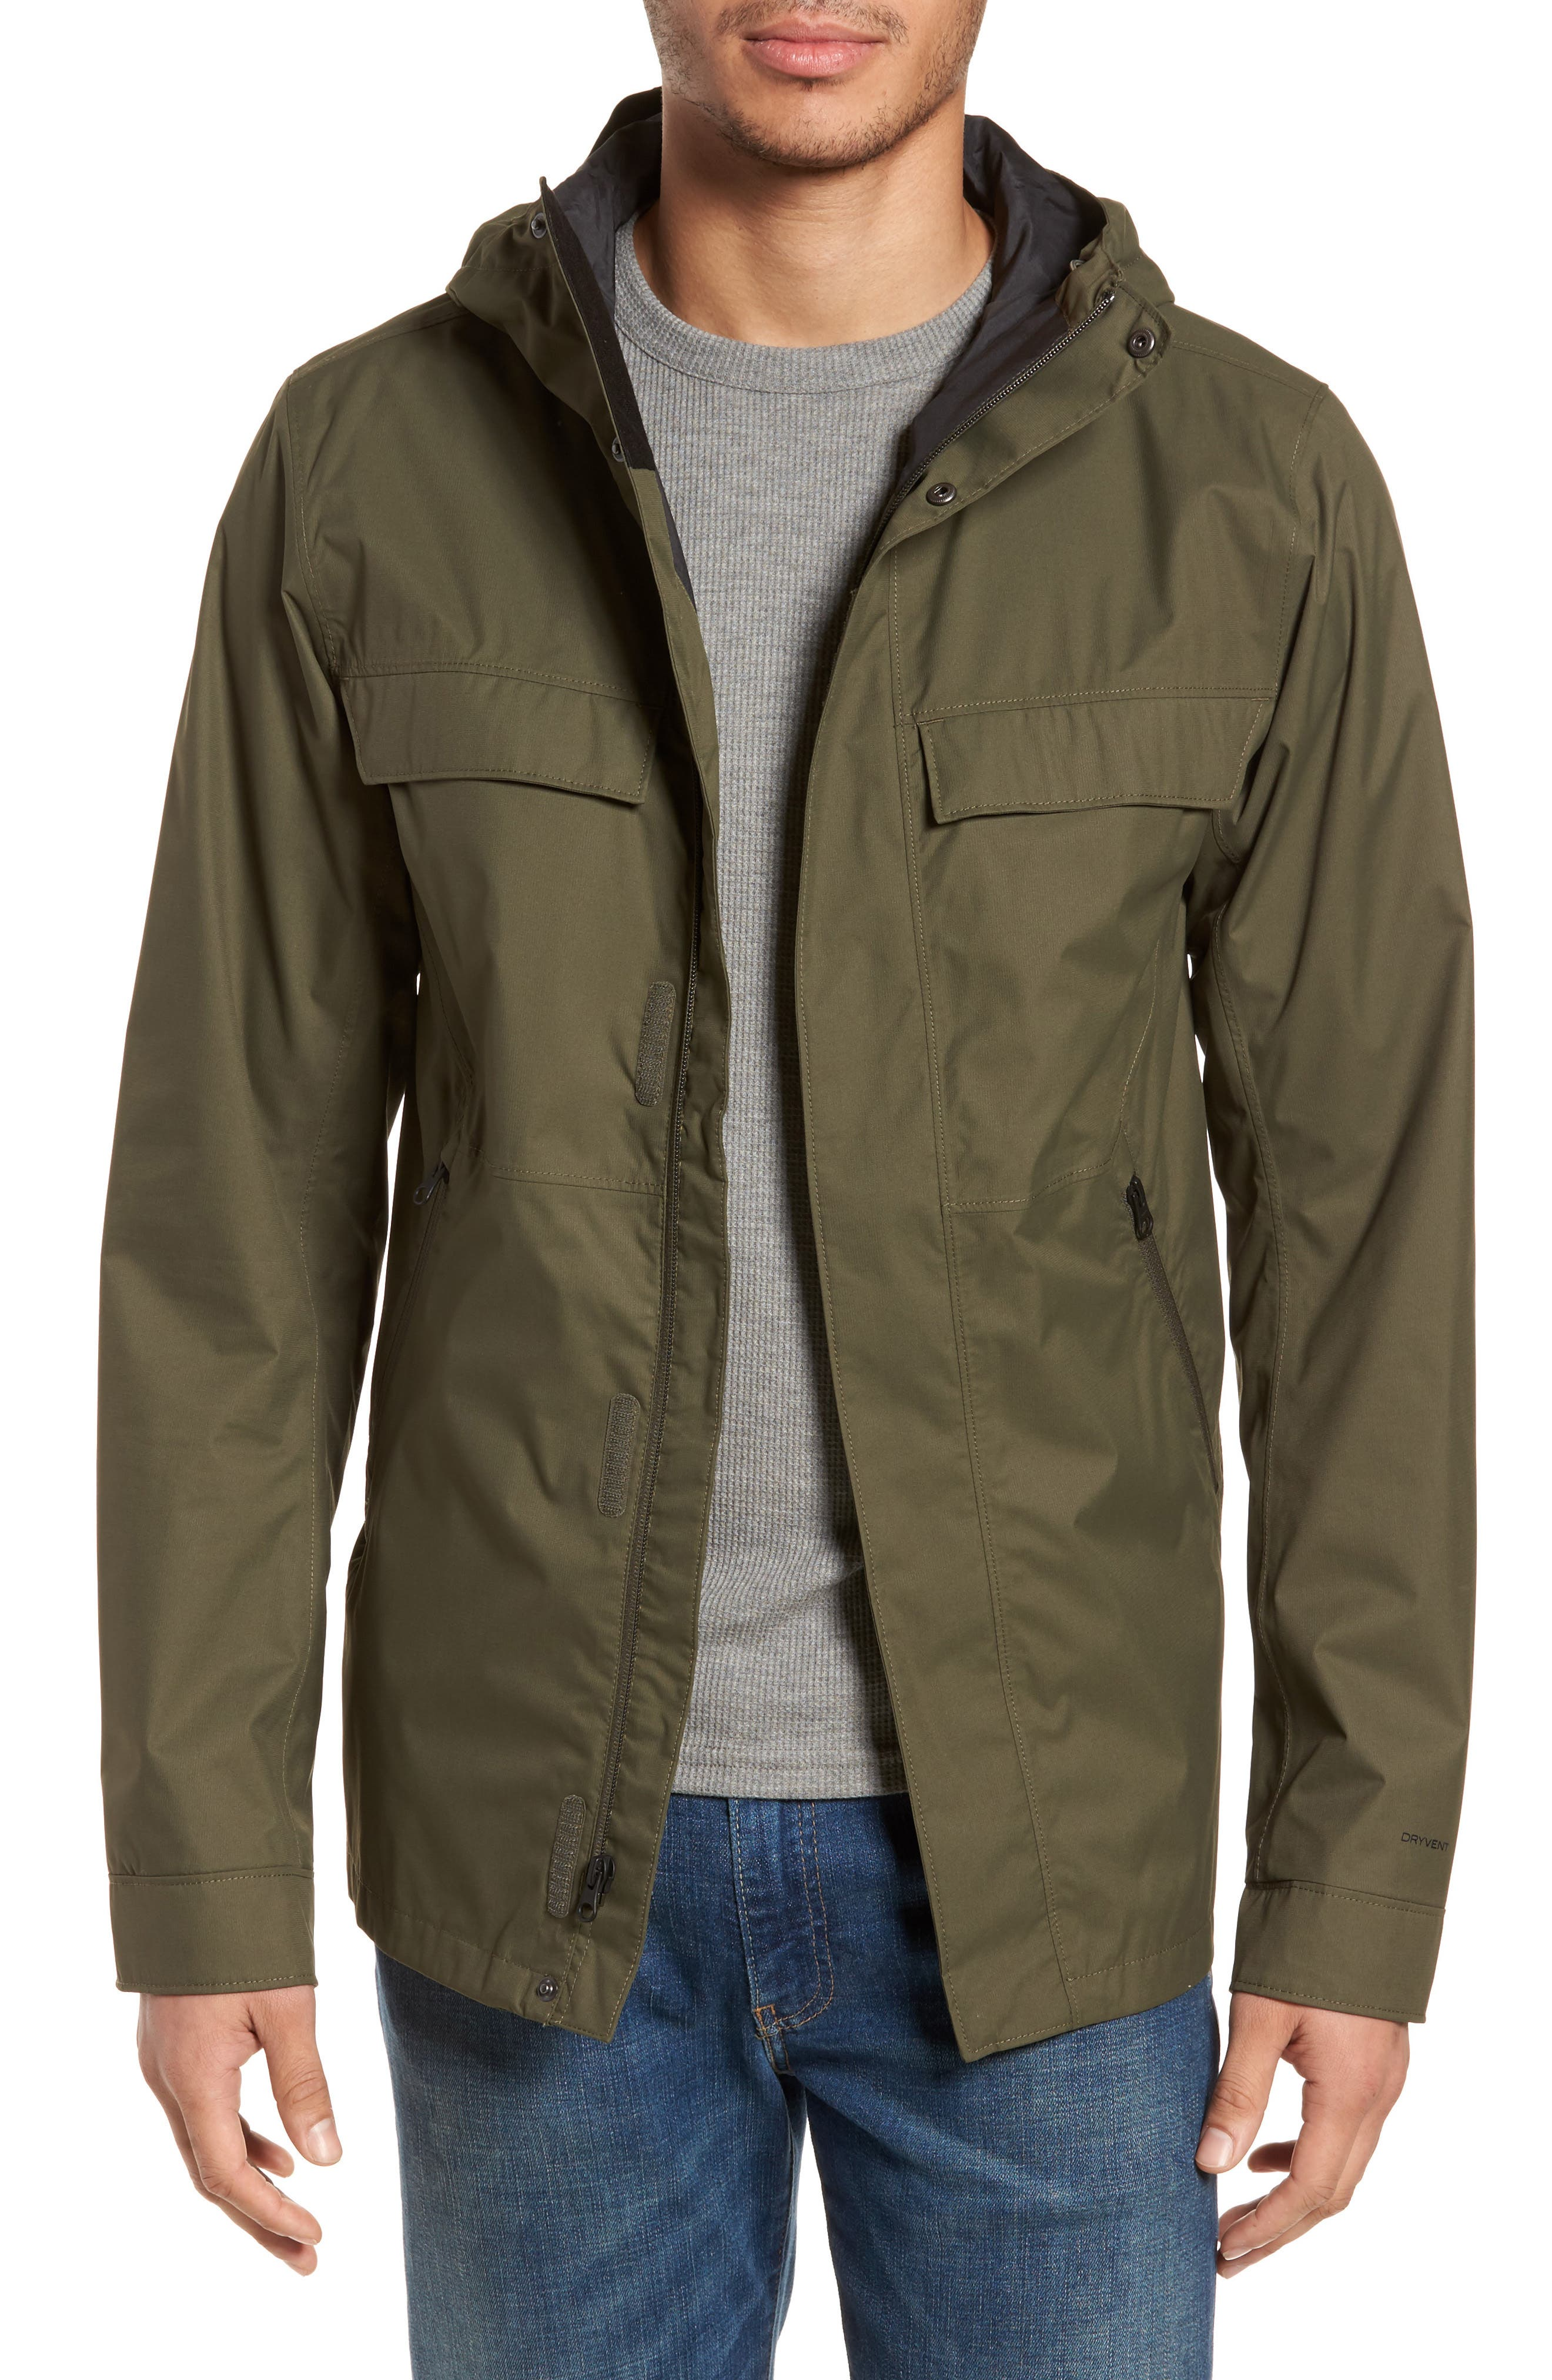 Jenison II Insulated Waterproof Jacket,                             Main thumbnail 1, color,                             New Taupe Green